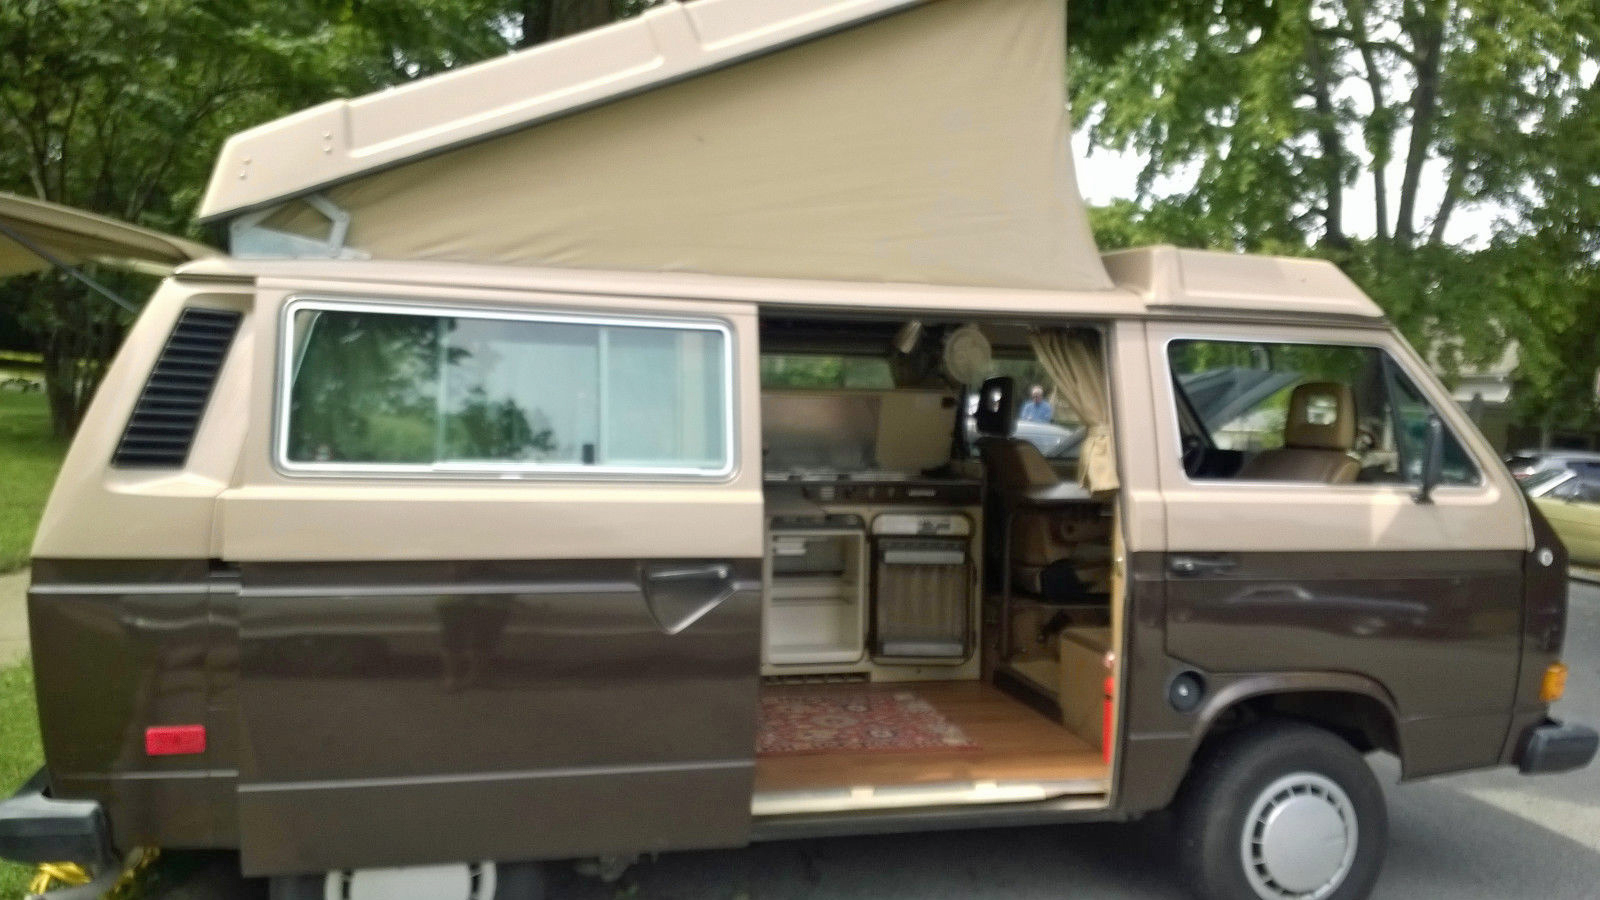 1984 Vw Vanagon Westfalia Camper Auction In Battle Ground